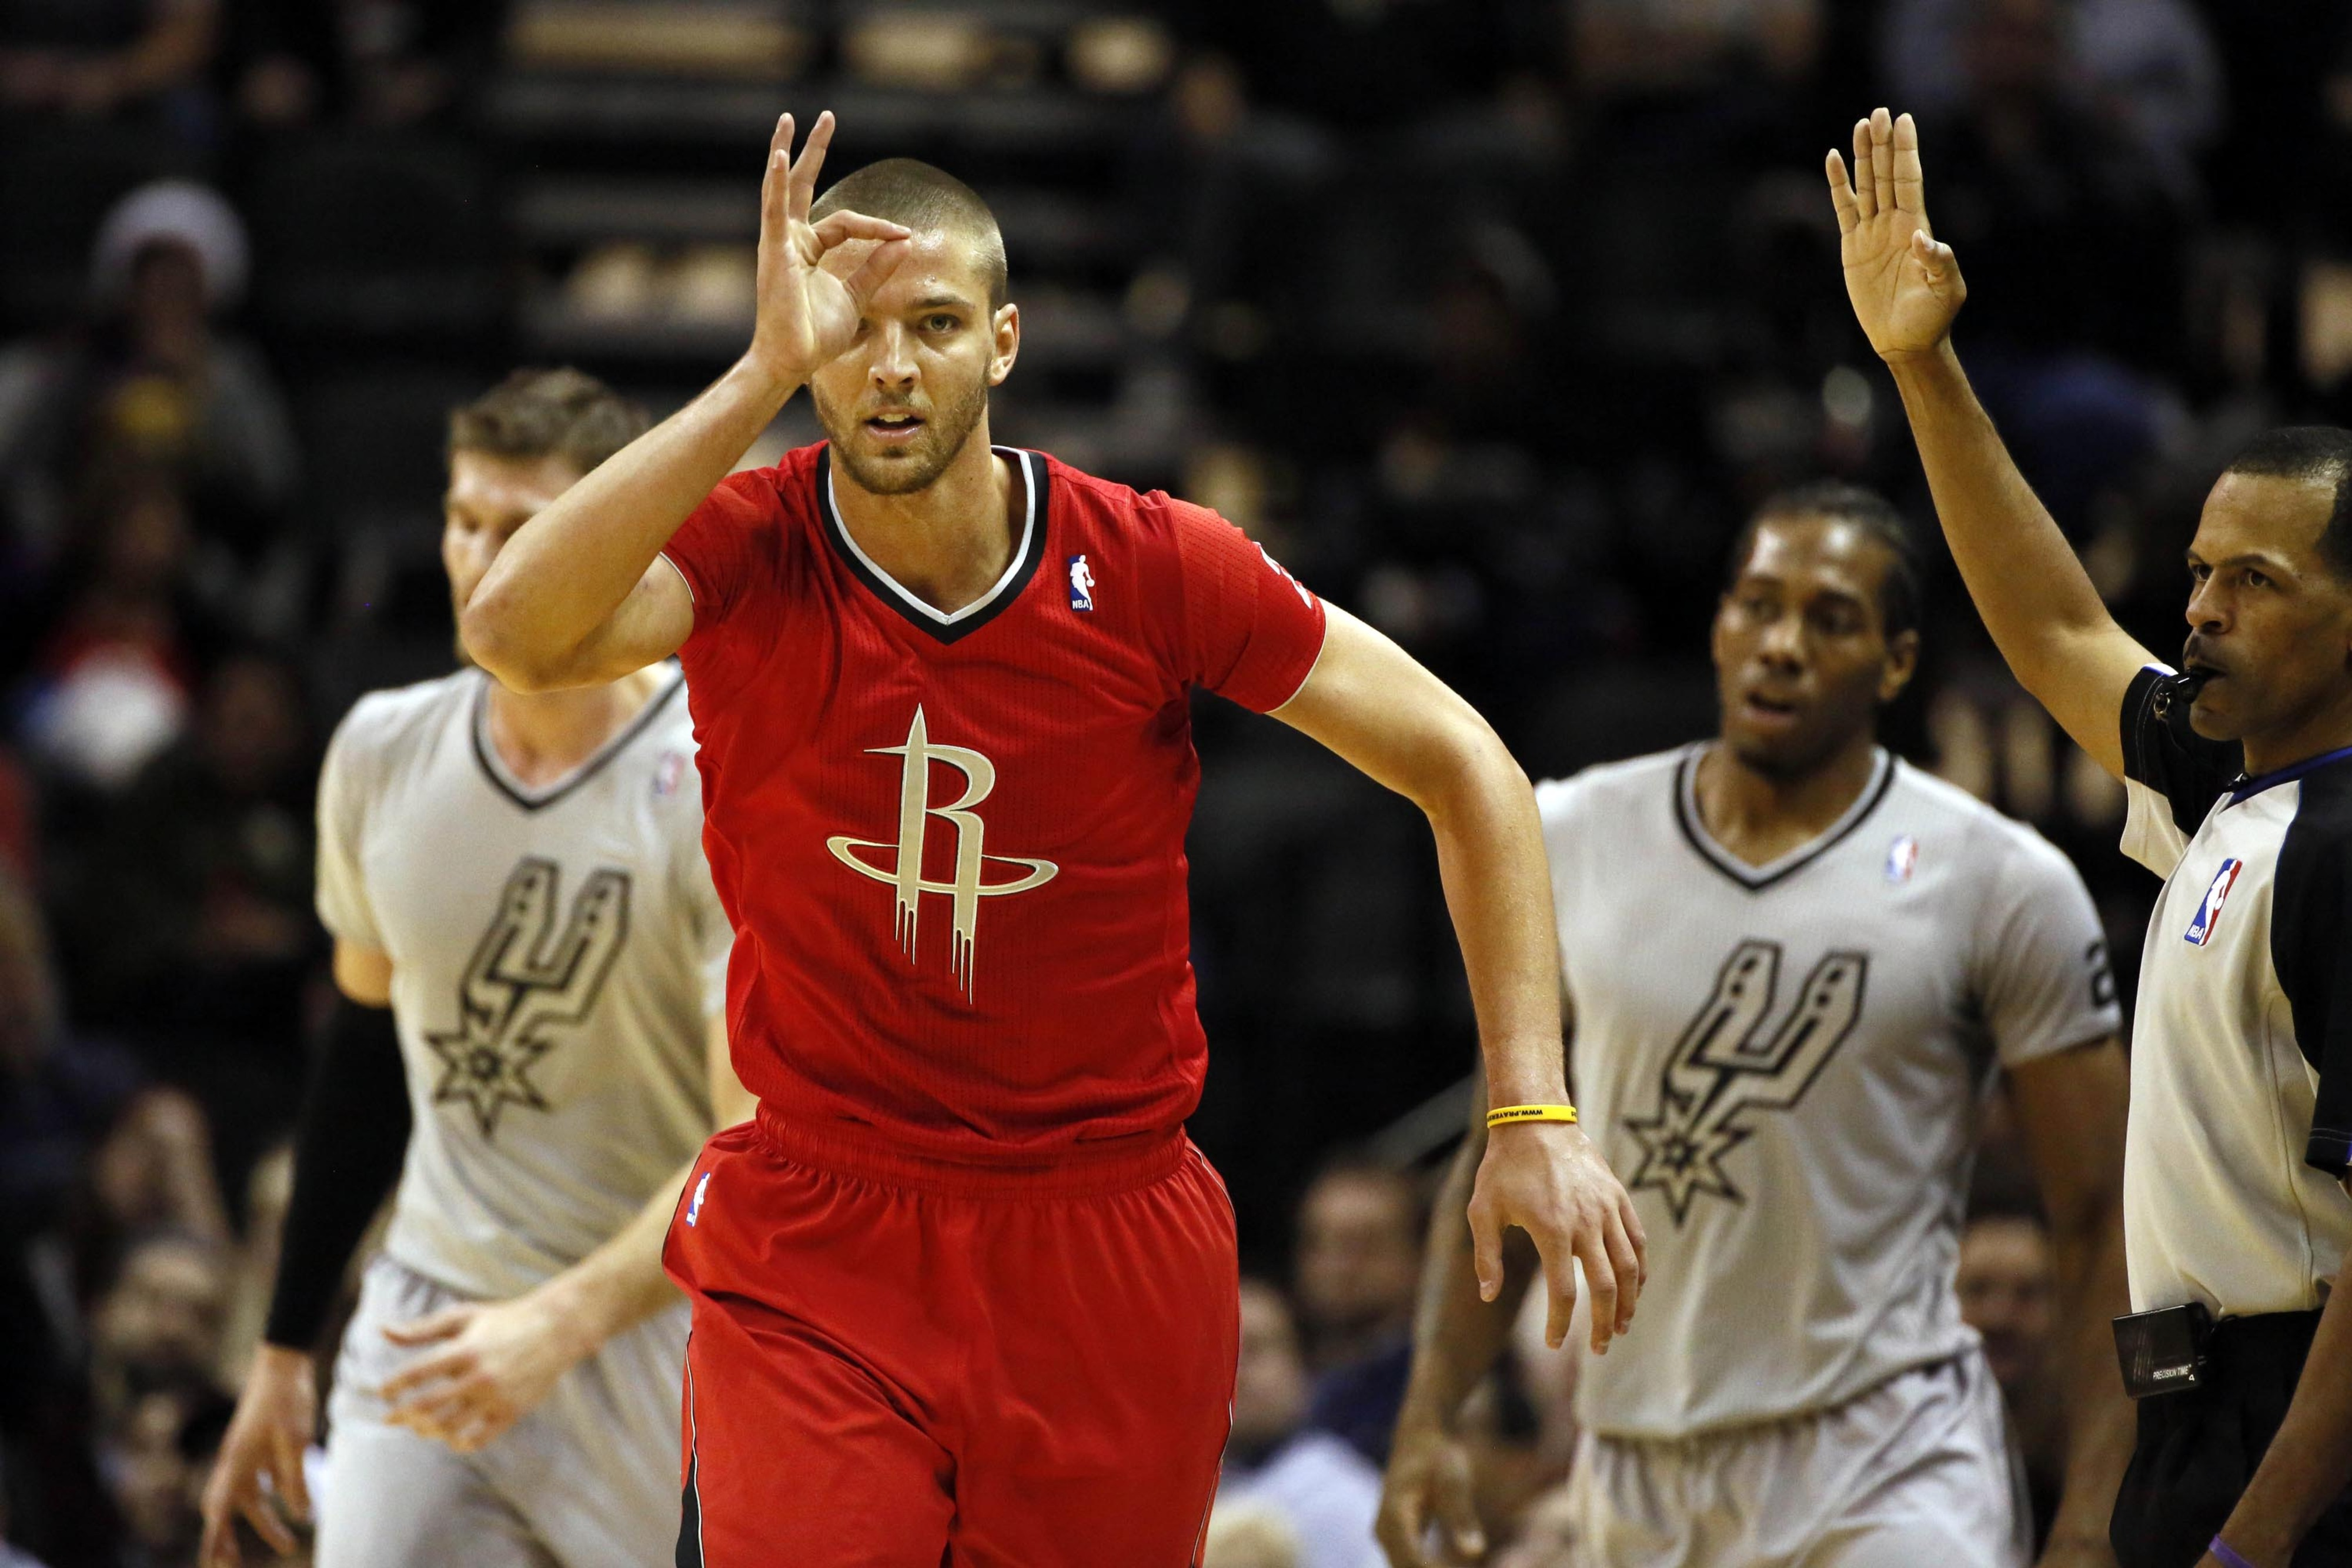 2013 NBA Christmas results: James Harden leads Rockets past Spurs, 111-98